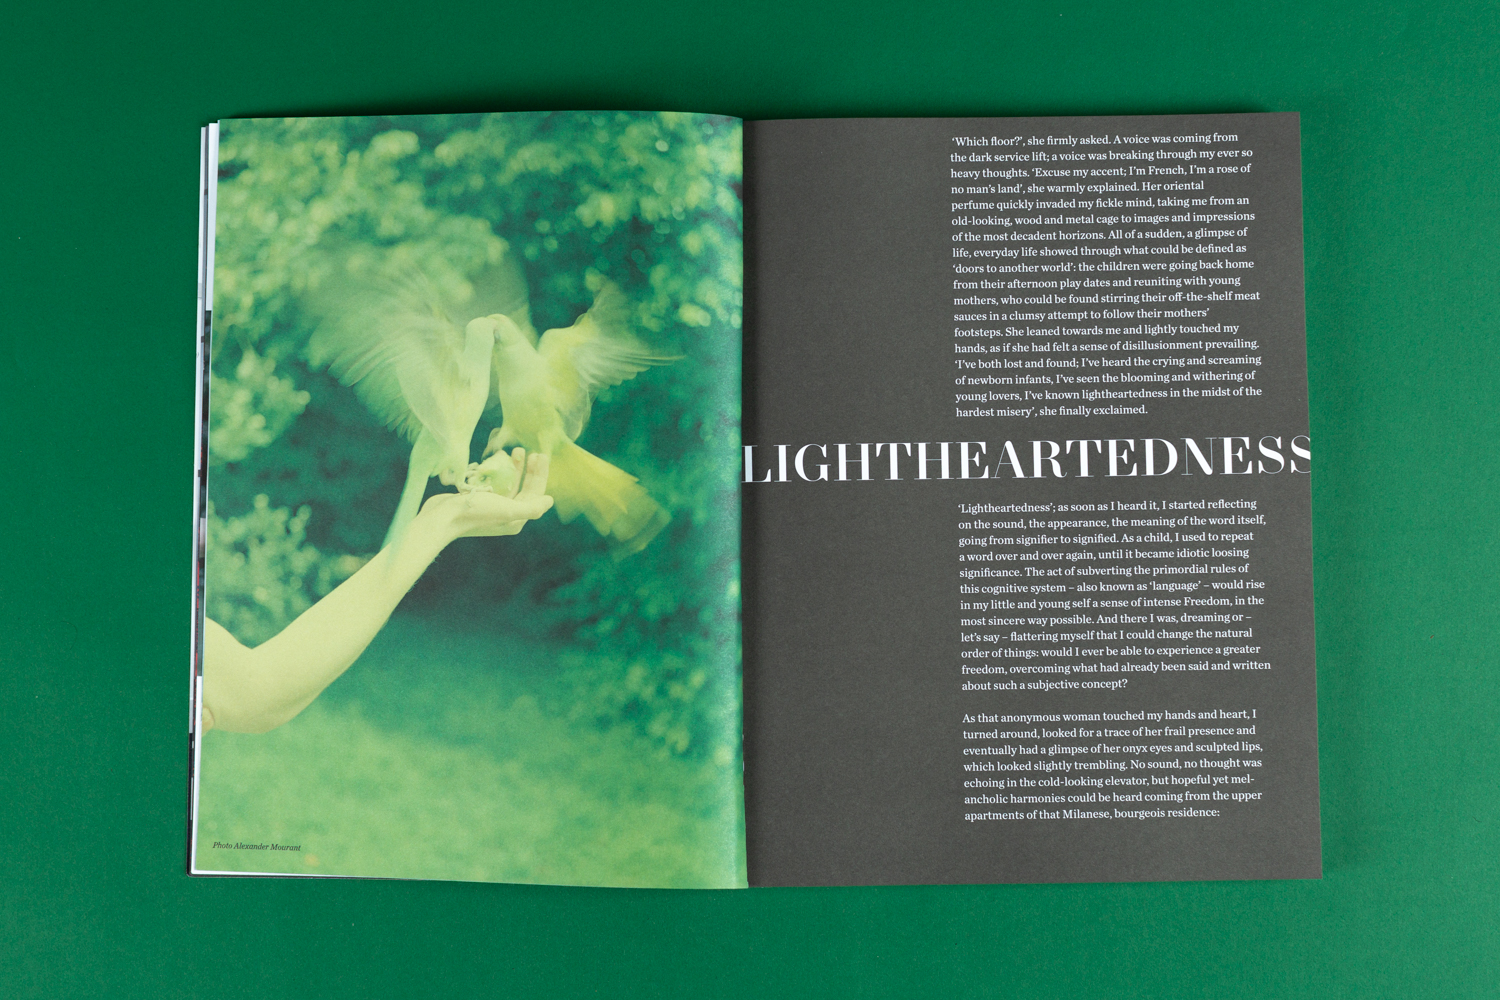 The Greatest Magazine, The Lightness, Issue #14